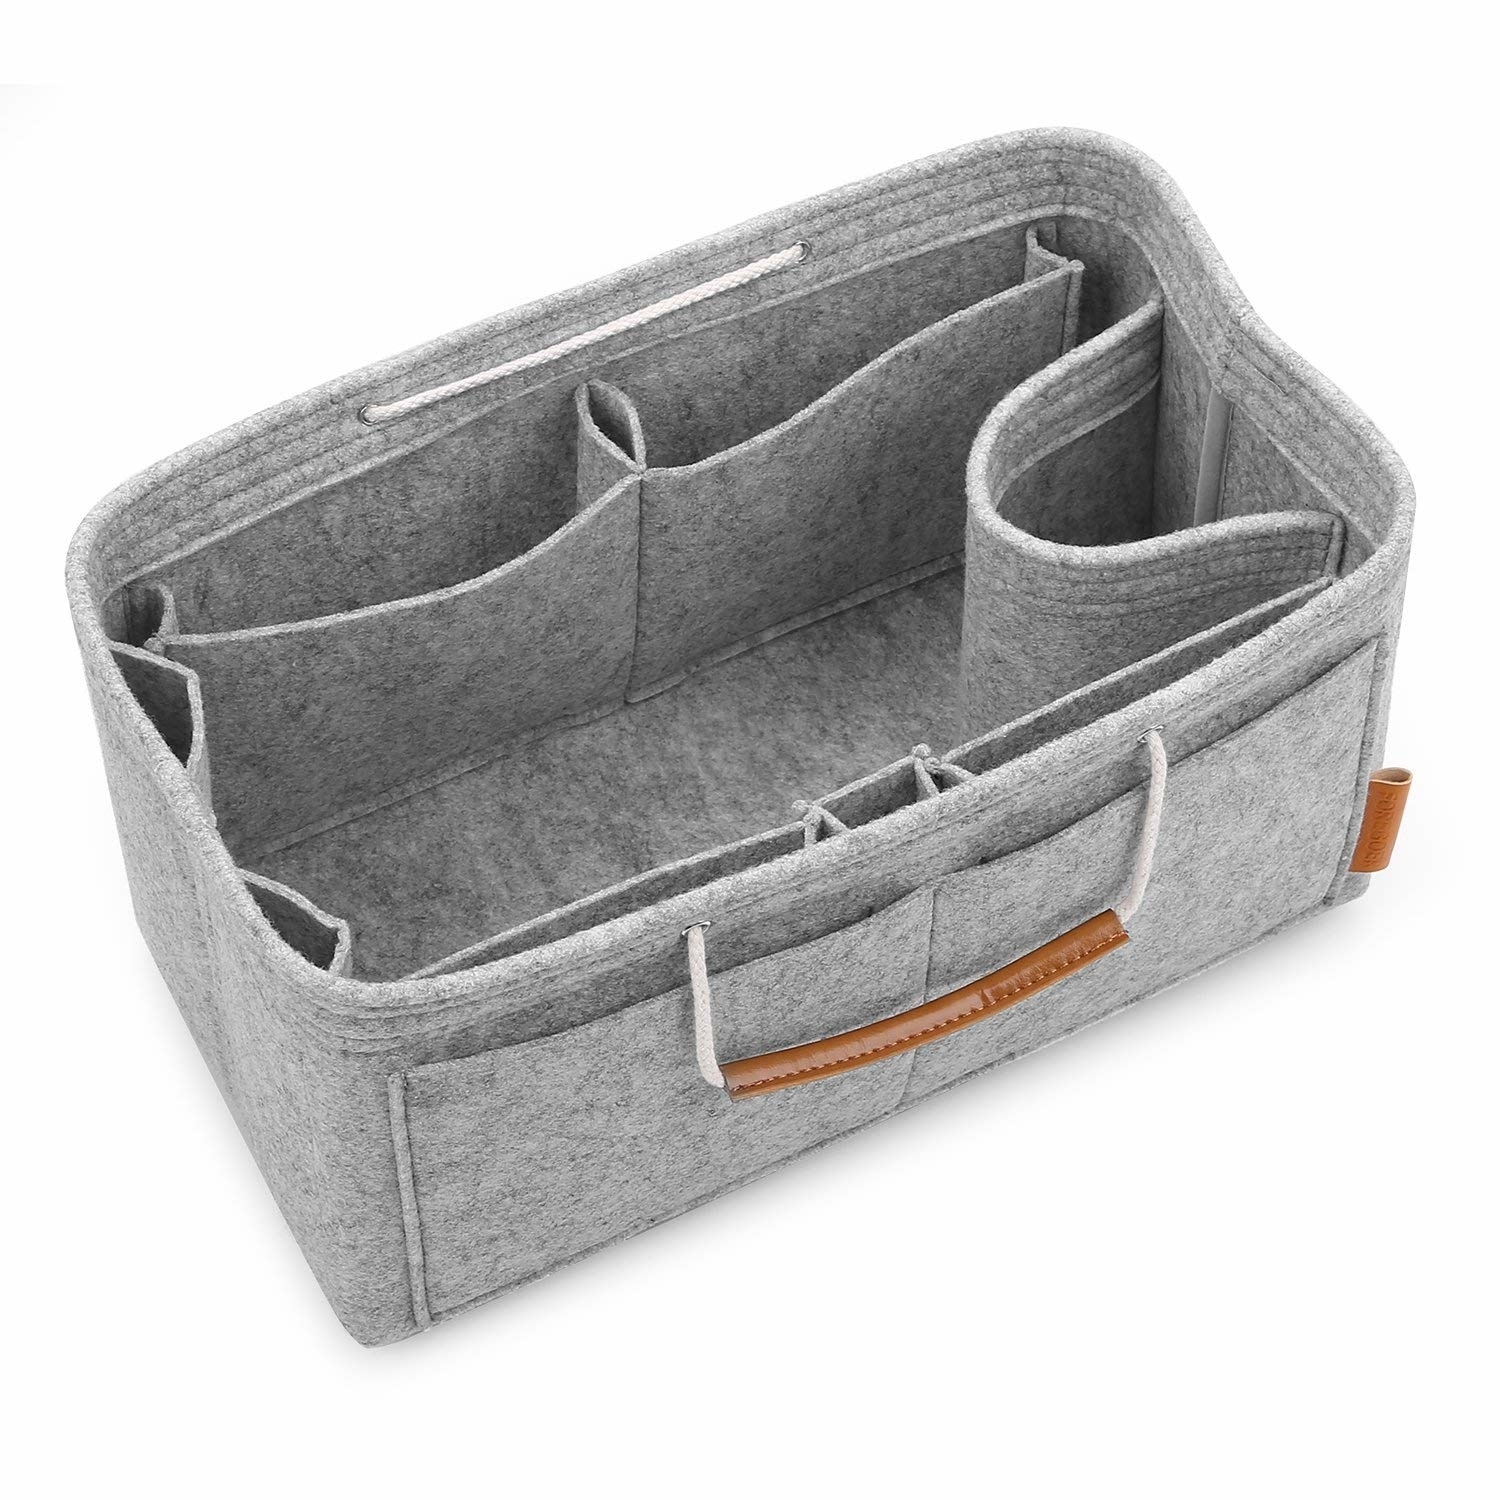 Felt Purse Insert Handbag Organizer Bag in Bag Organizer with Handles (imomoi) photo